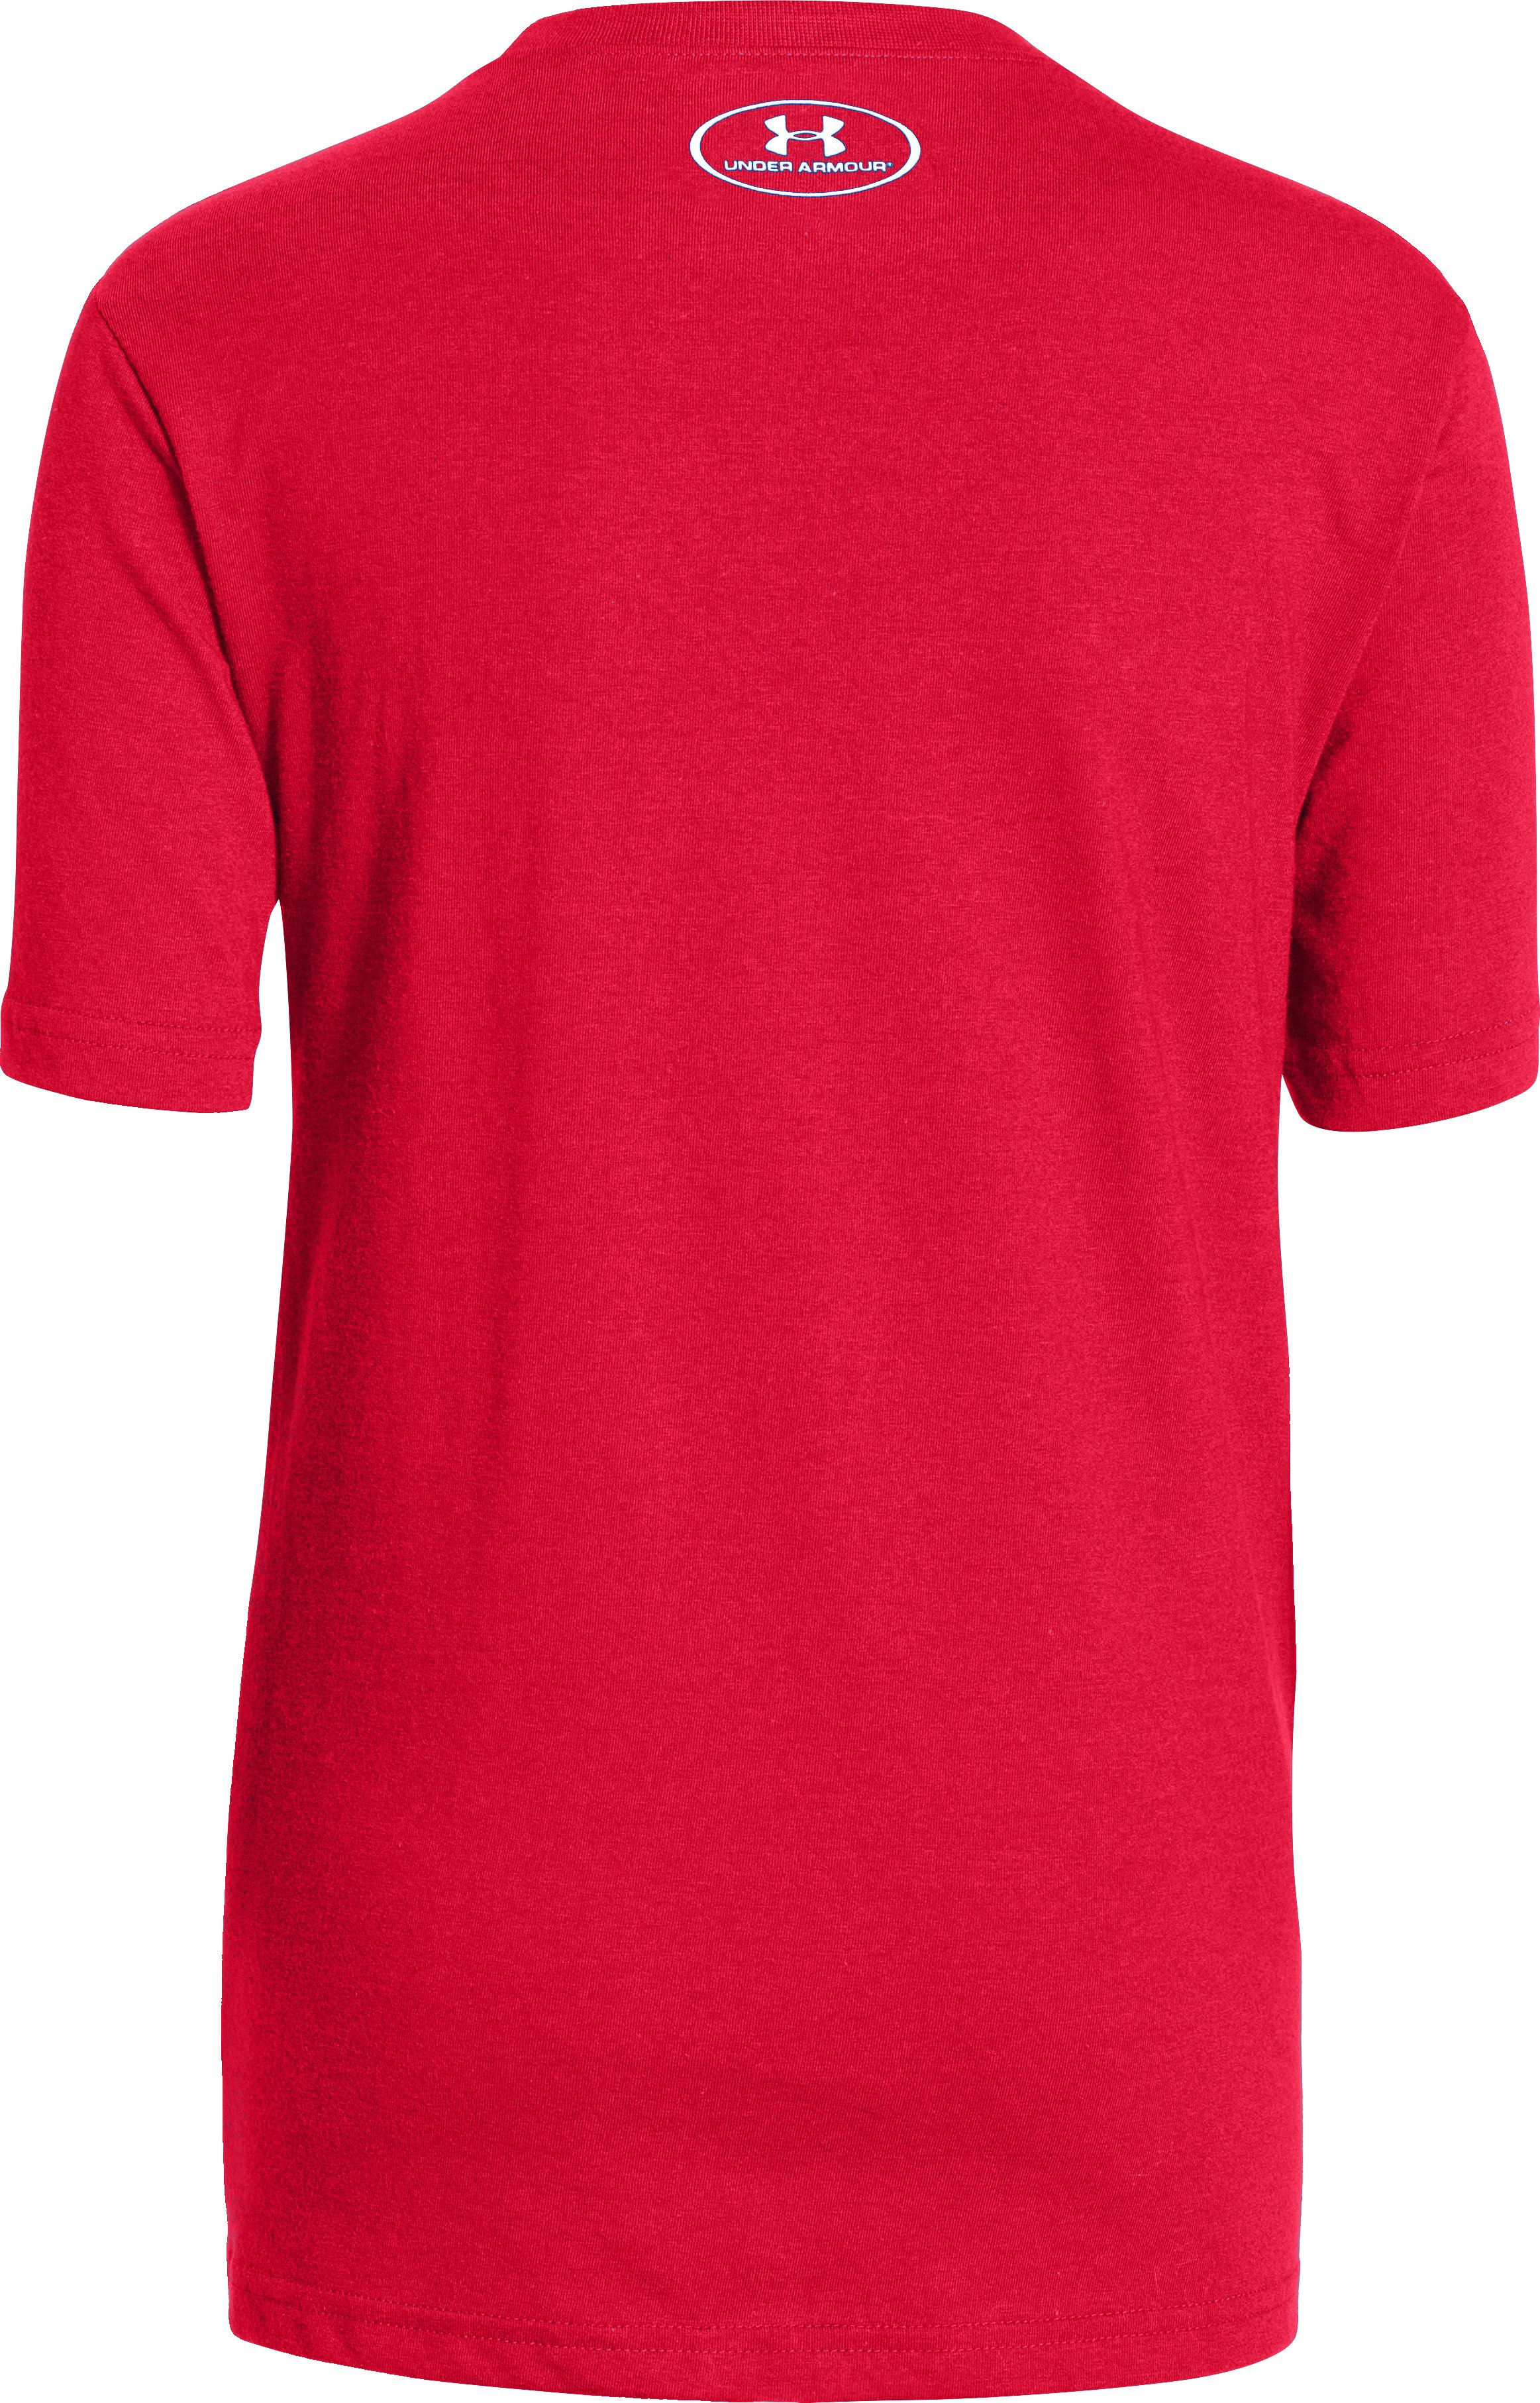 Boys' UA Ugly Sweater T-Shirt, Red